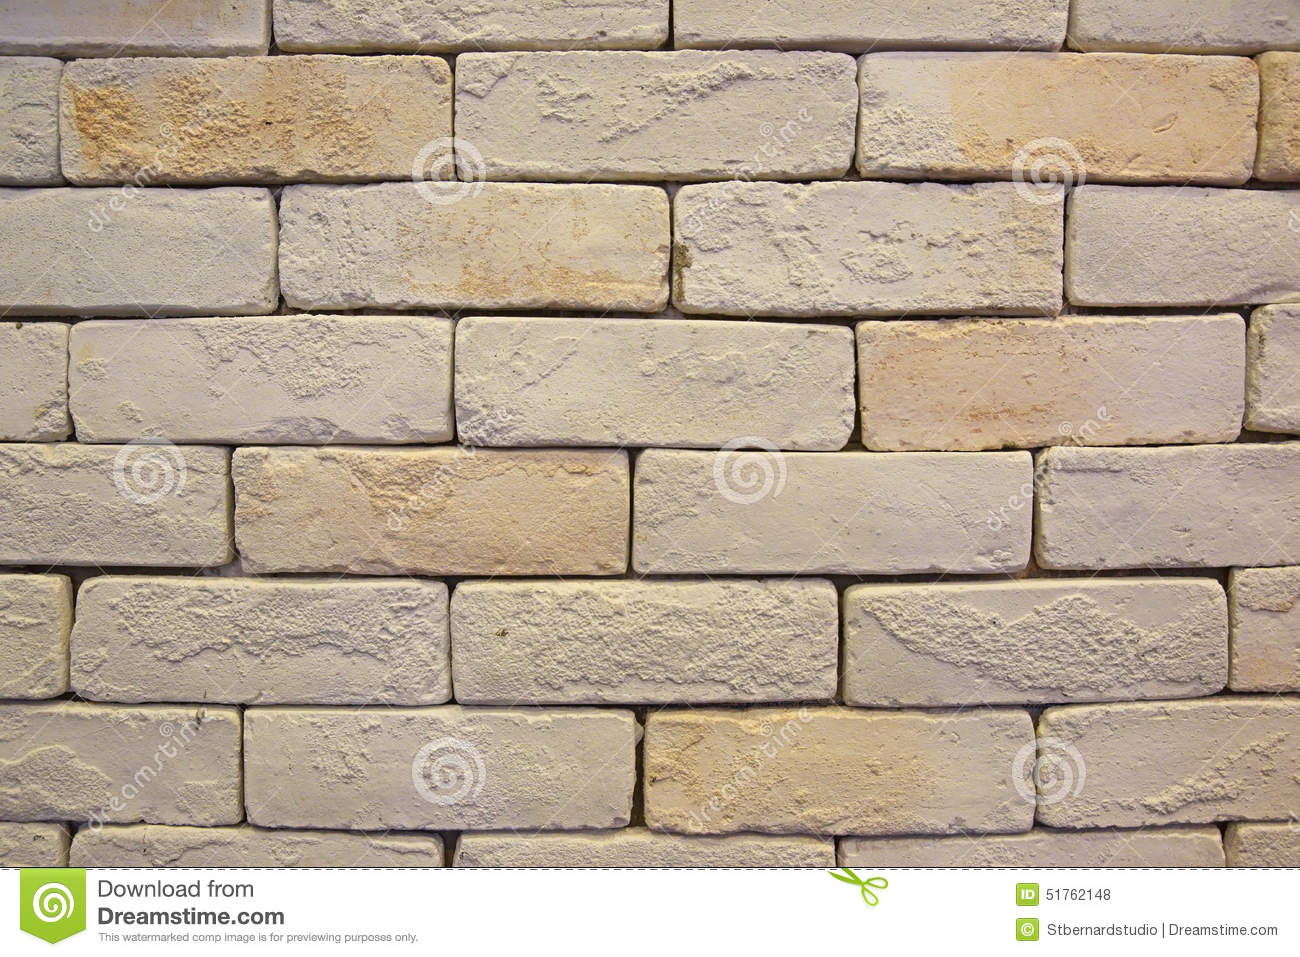 white or light color bricks as plain background stock